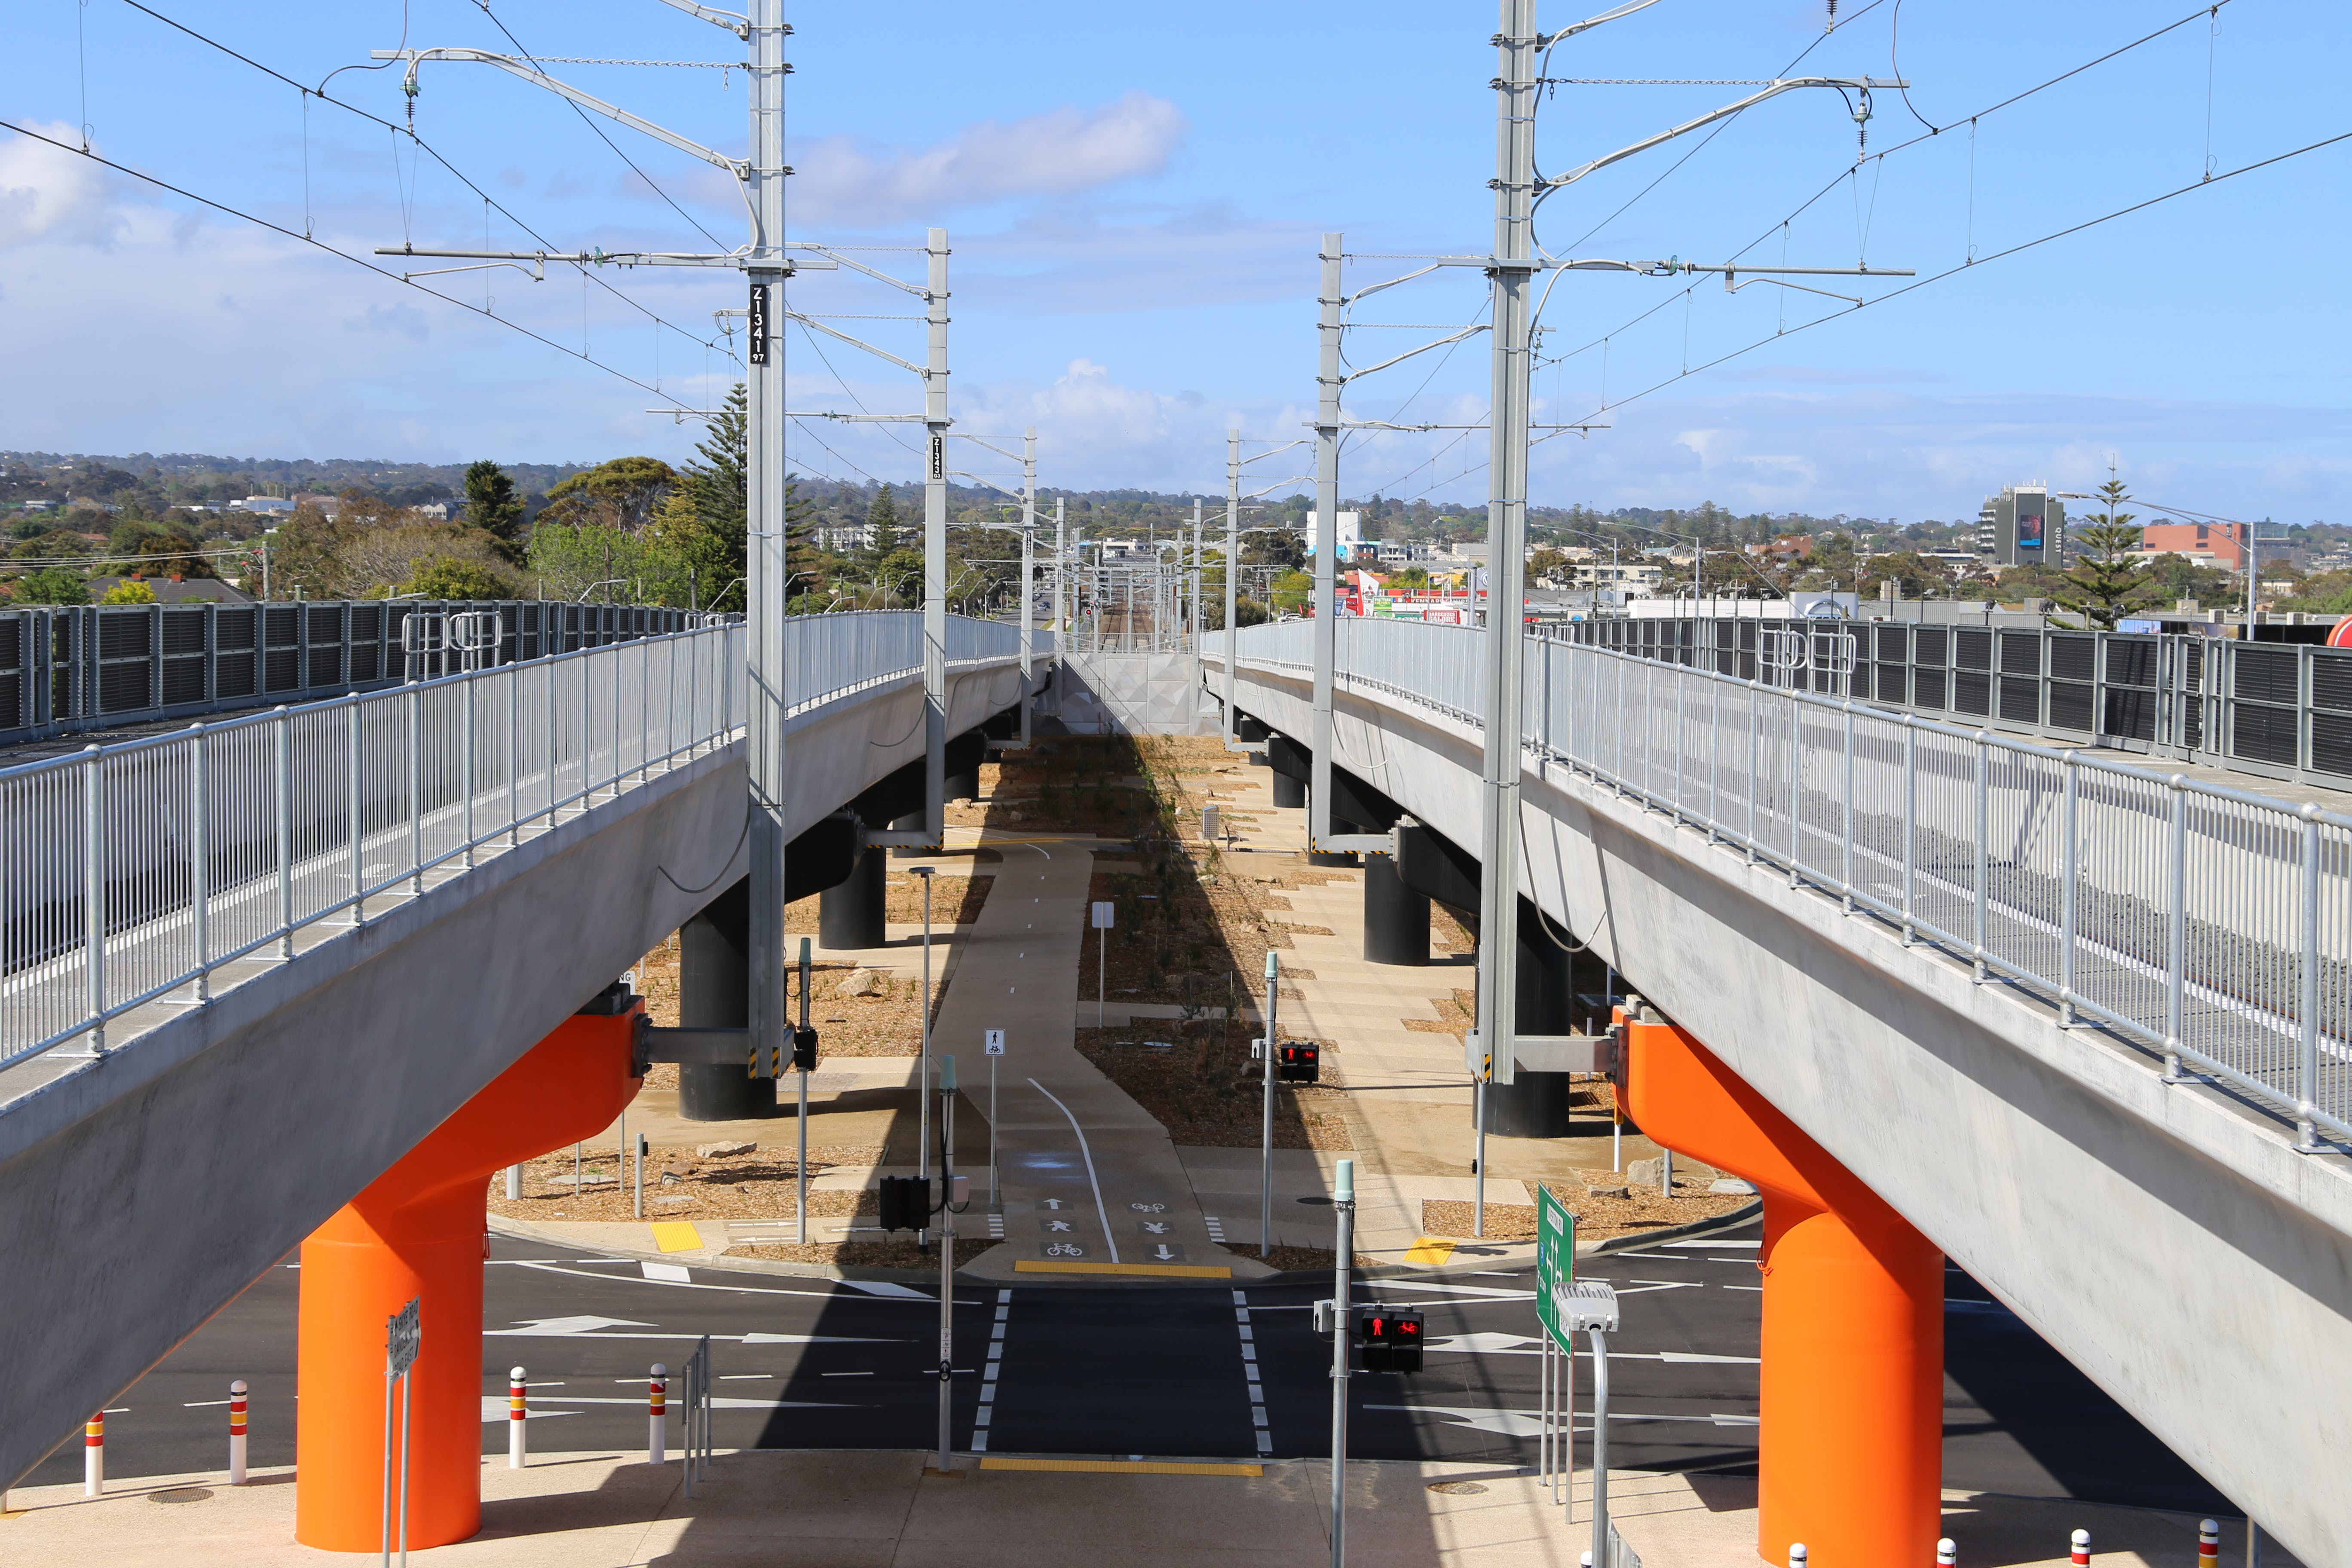 The new elevated structure over the road